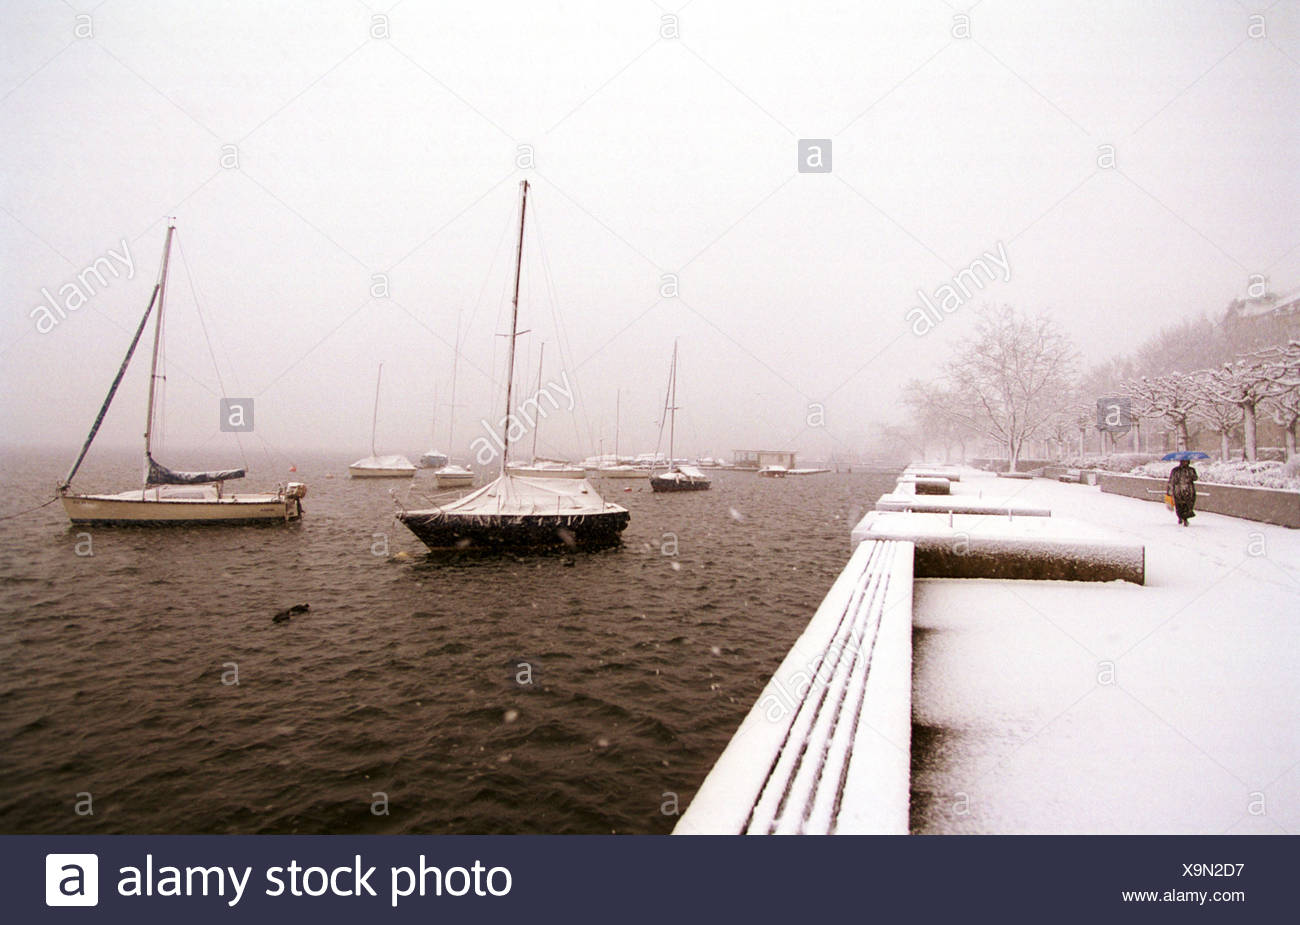 Boats on the snow-covered banks of the Zuerichsees - Stock Image